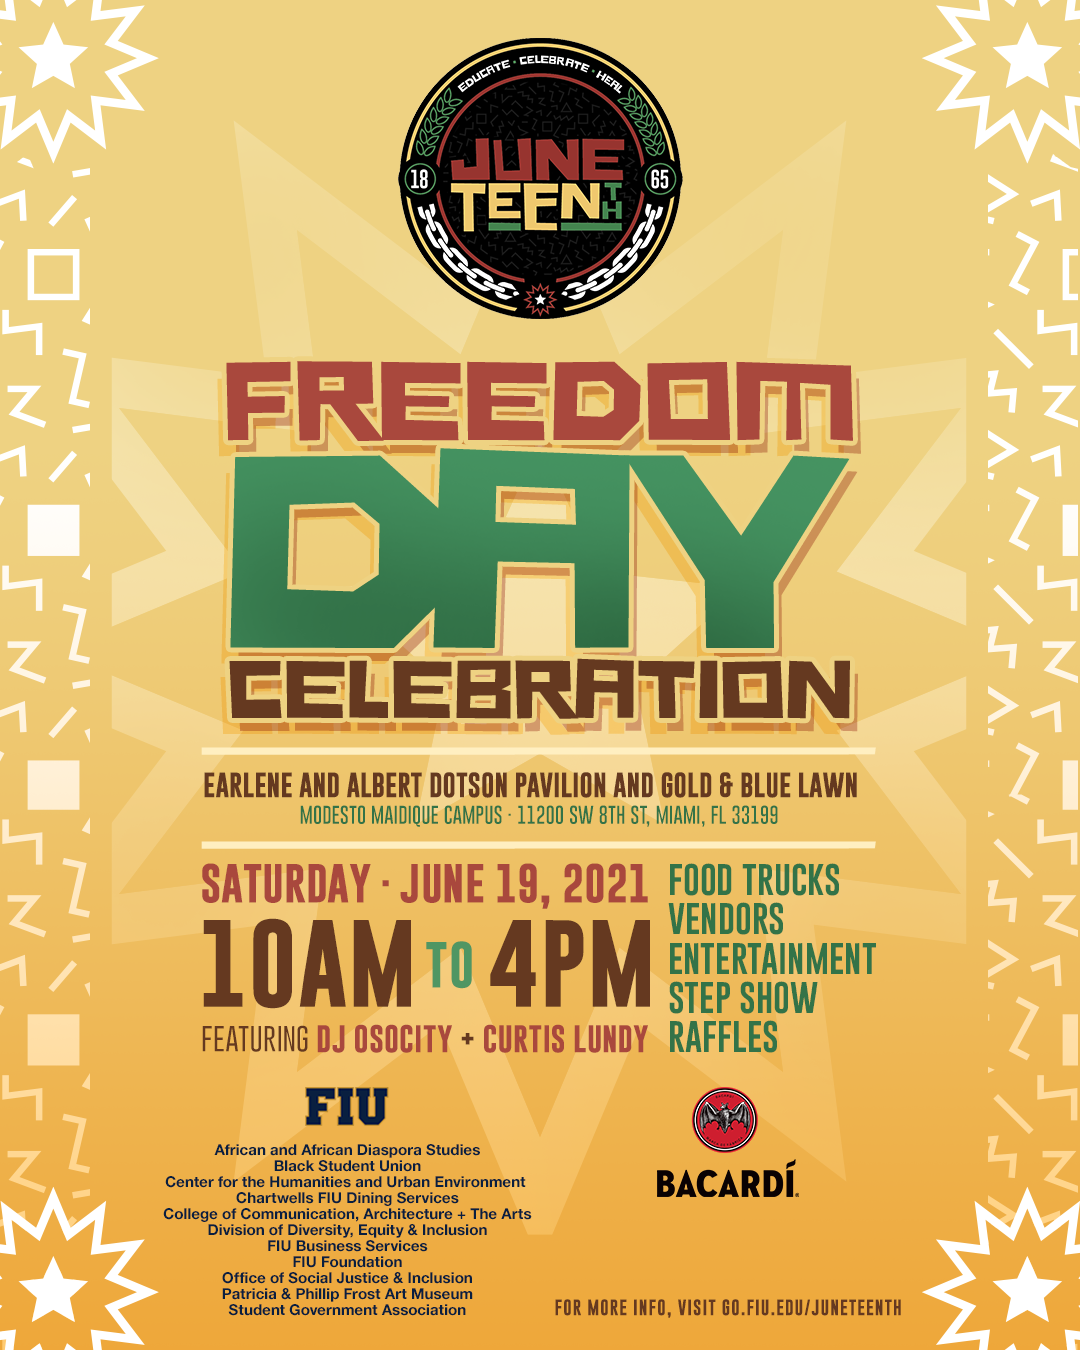 flyer promoting freedom day celebration on june 19 from 10am to 3pm